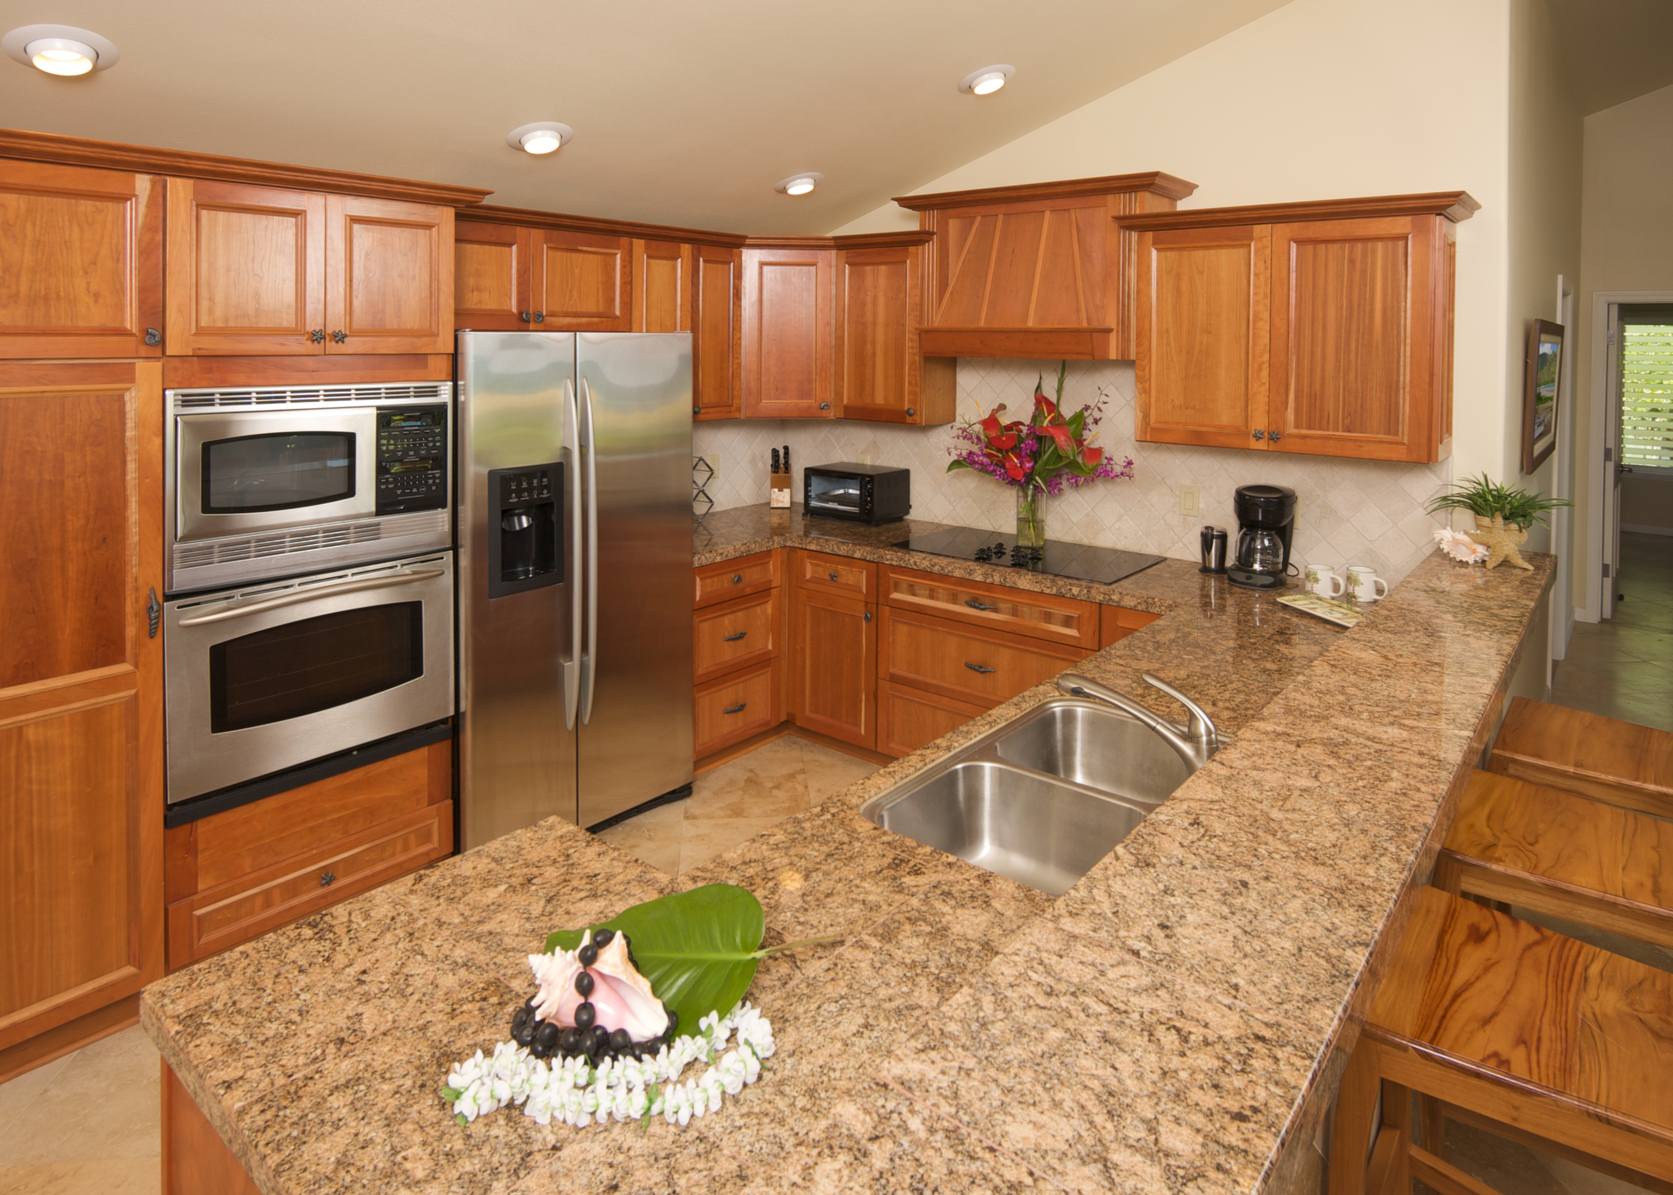 how much does it cost to remodel a kitchen cost of kitchen countertops cost to remodel a kitchen